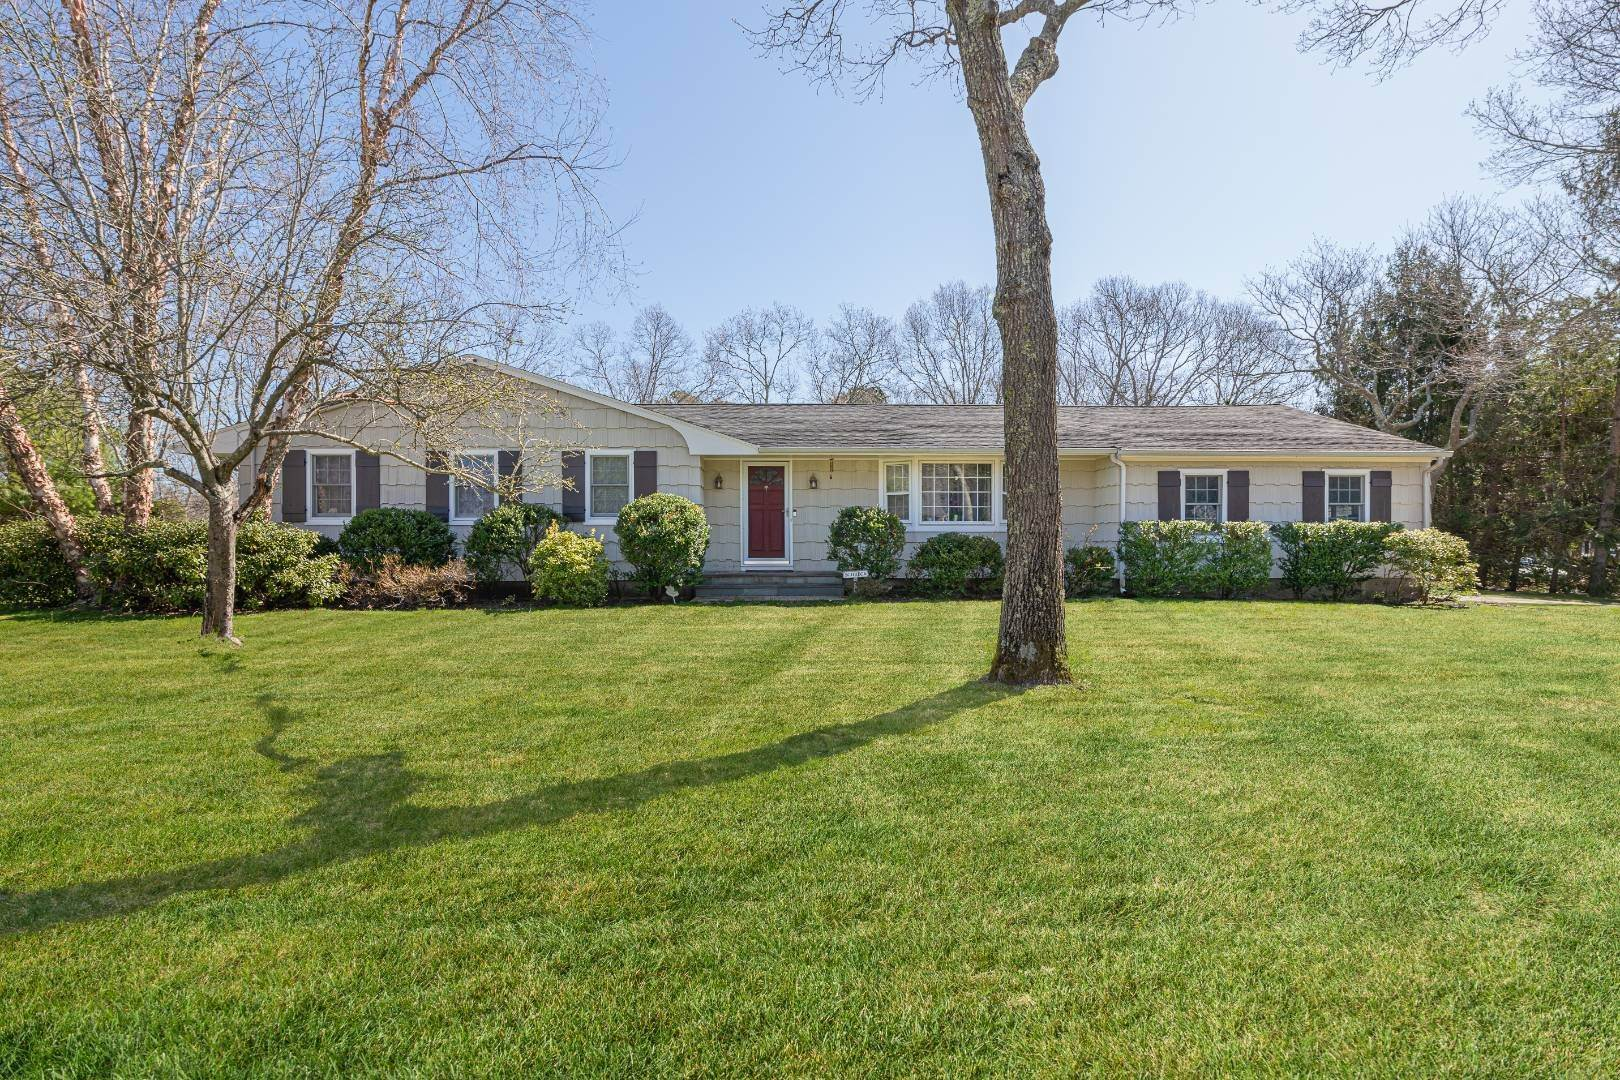 Single Family Home for Sale at Desirable Tiana Shores Ranch With Pool In East Quogue 15 Deerfeed Path, East Quogue, NY 11942